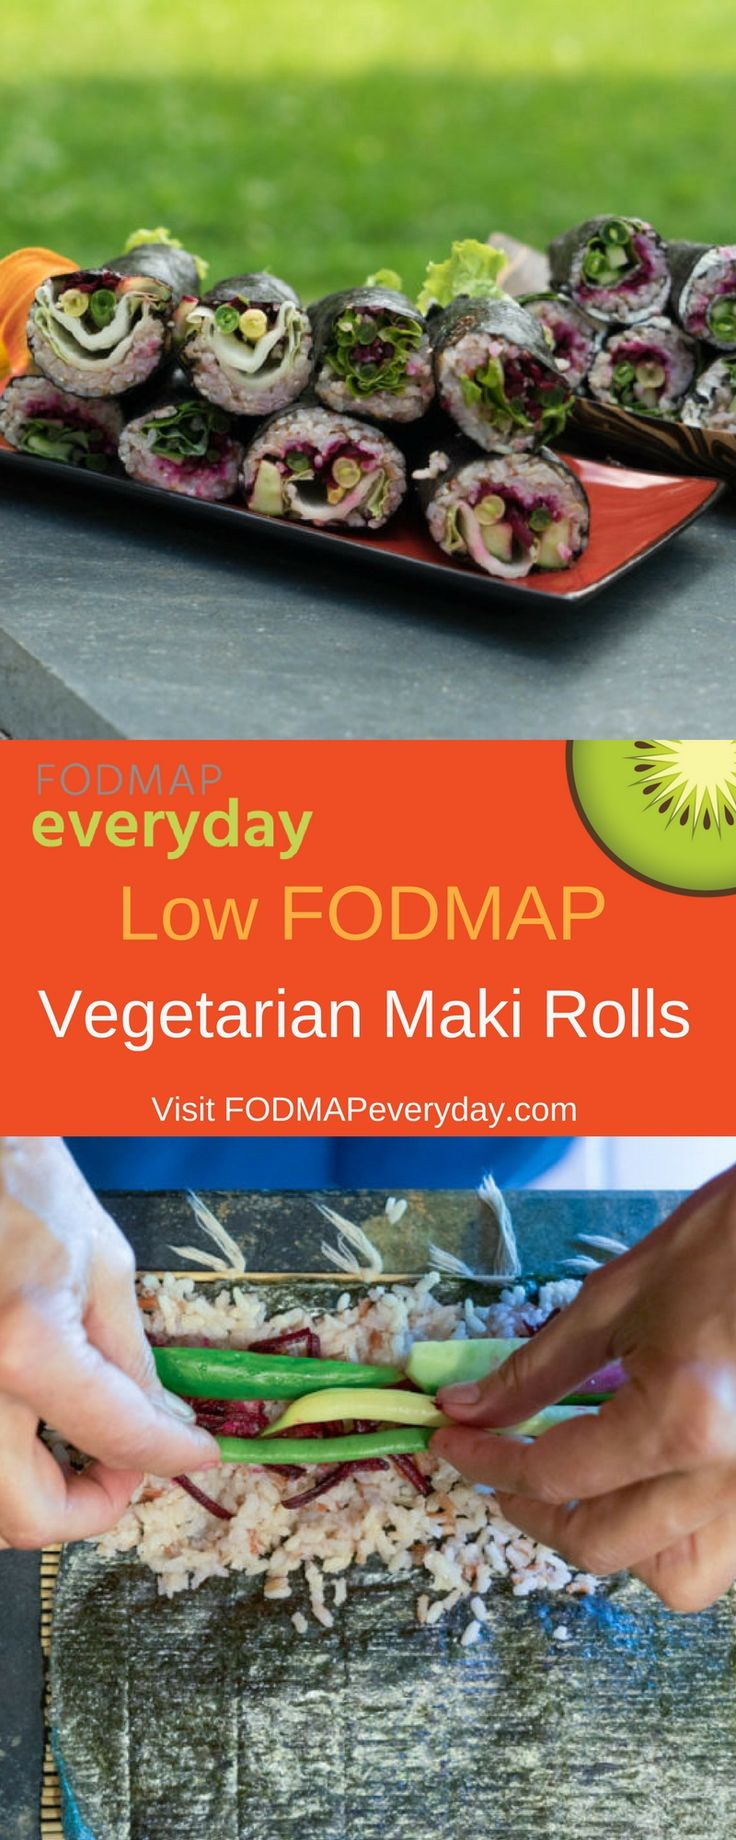 Contributor Leslie Cerier shows us how to make Vegetarian Maki Rolls with or without a sushi mat.